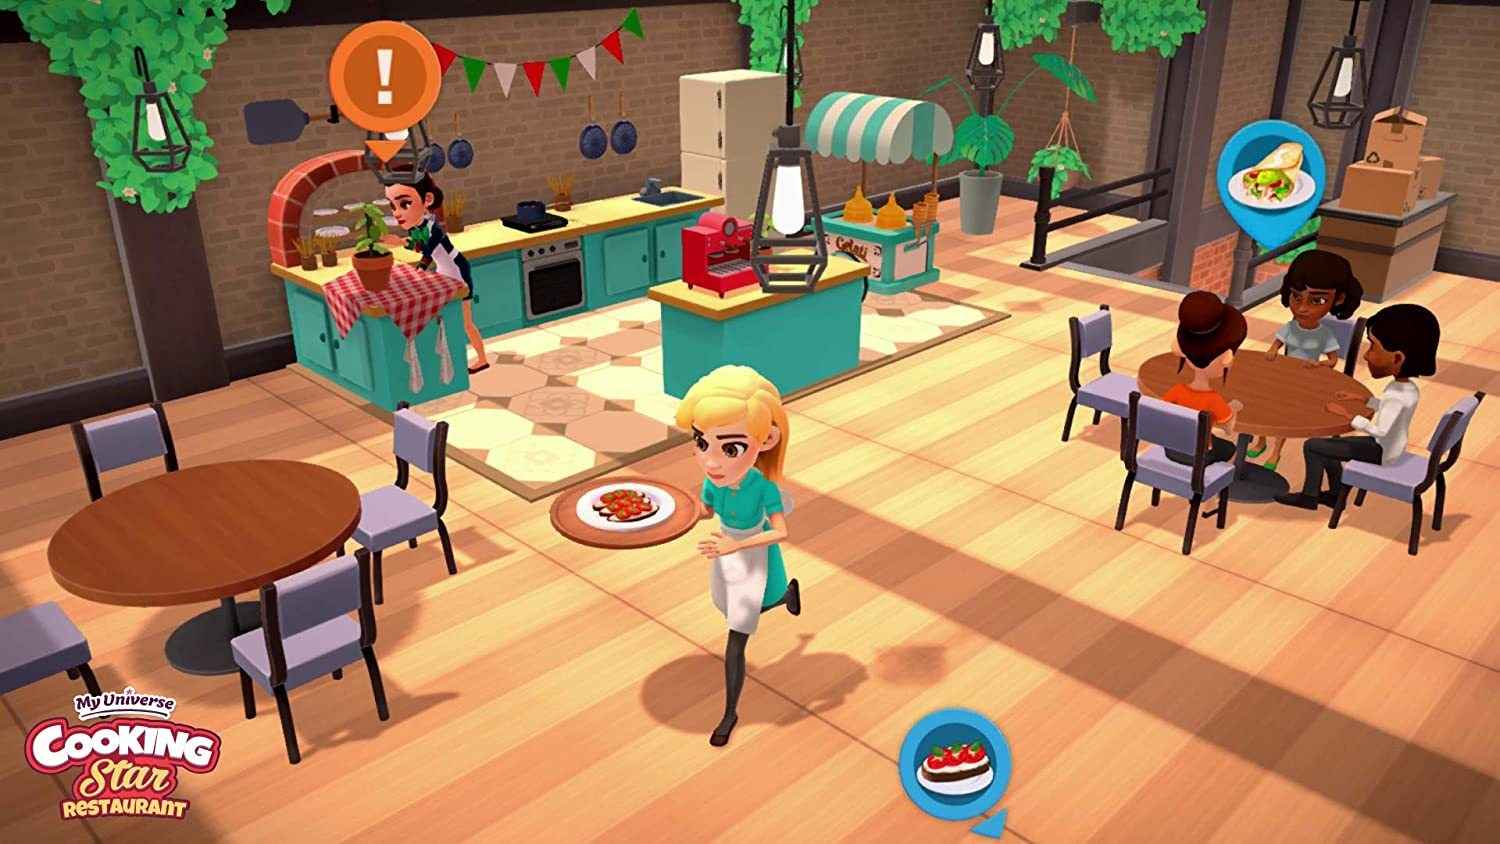 My Universe - Cooking Star Restaurant - Nintendo Switch